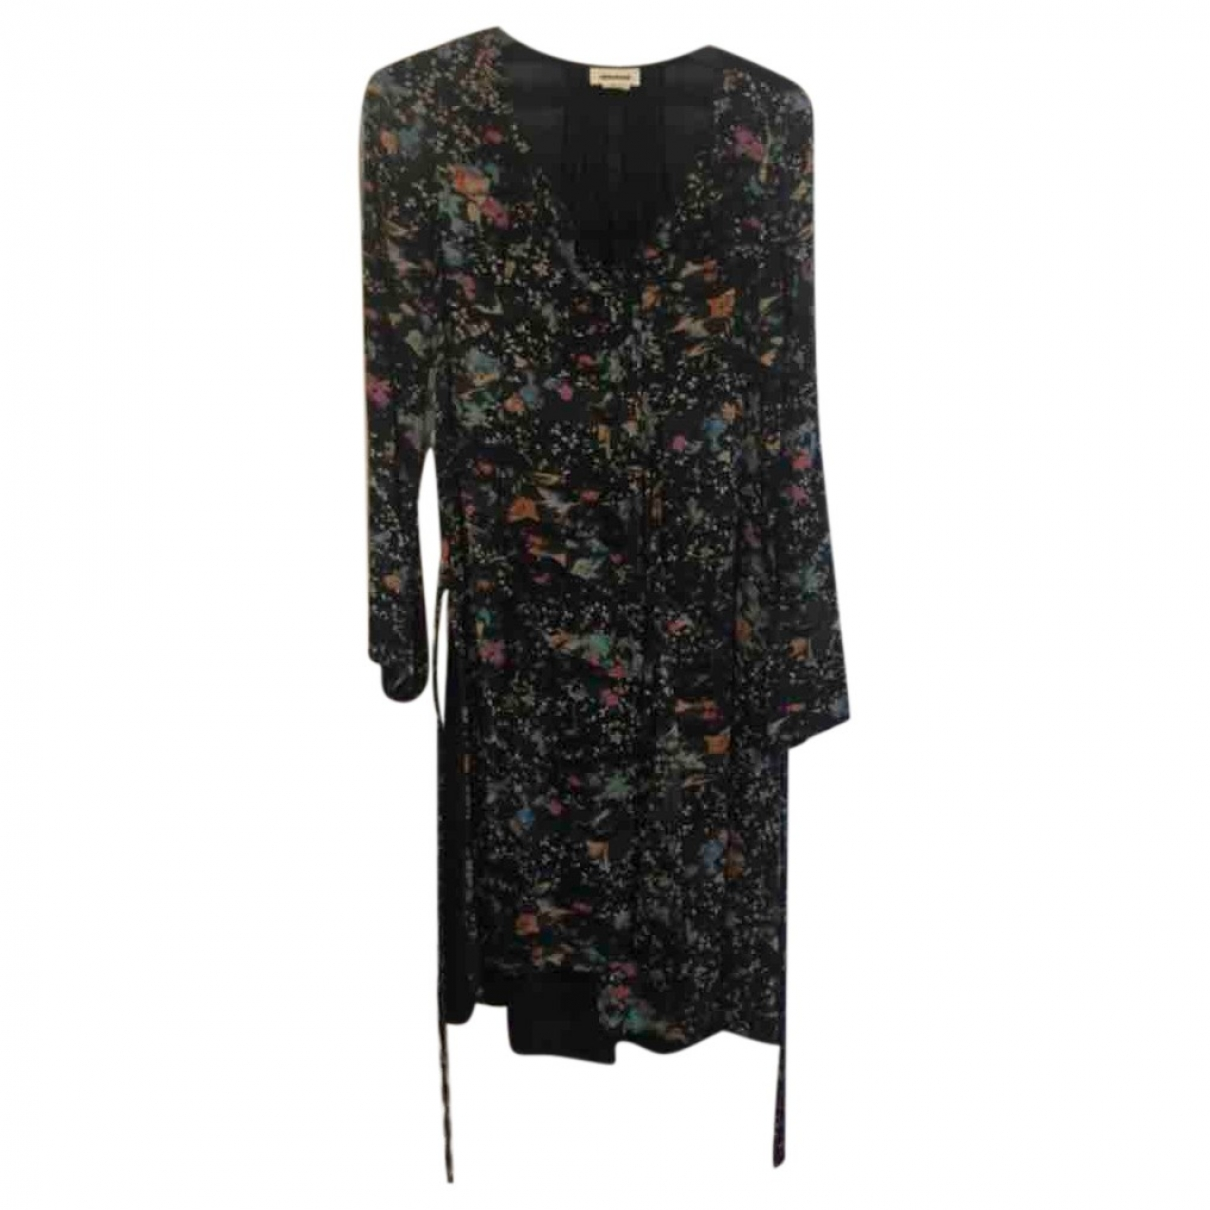 Zadig & Voltaire \N Black dress for Women XS International